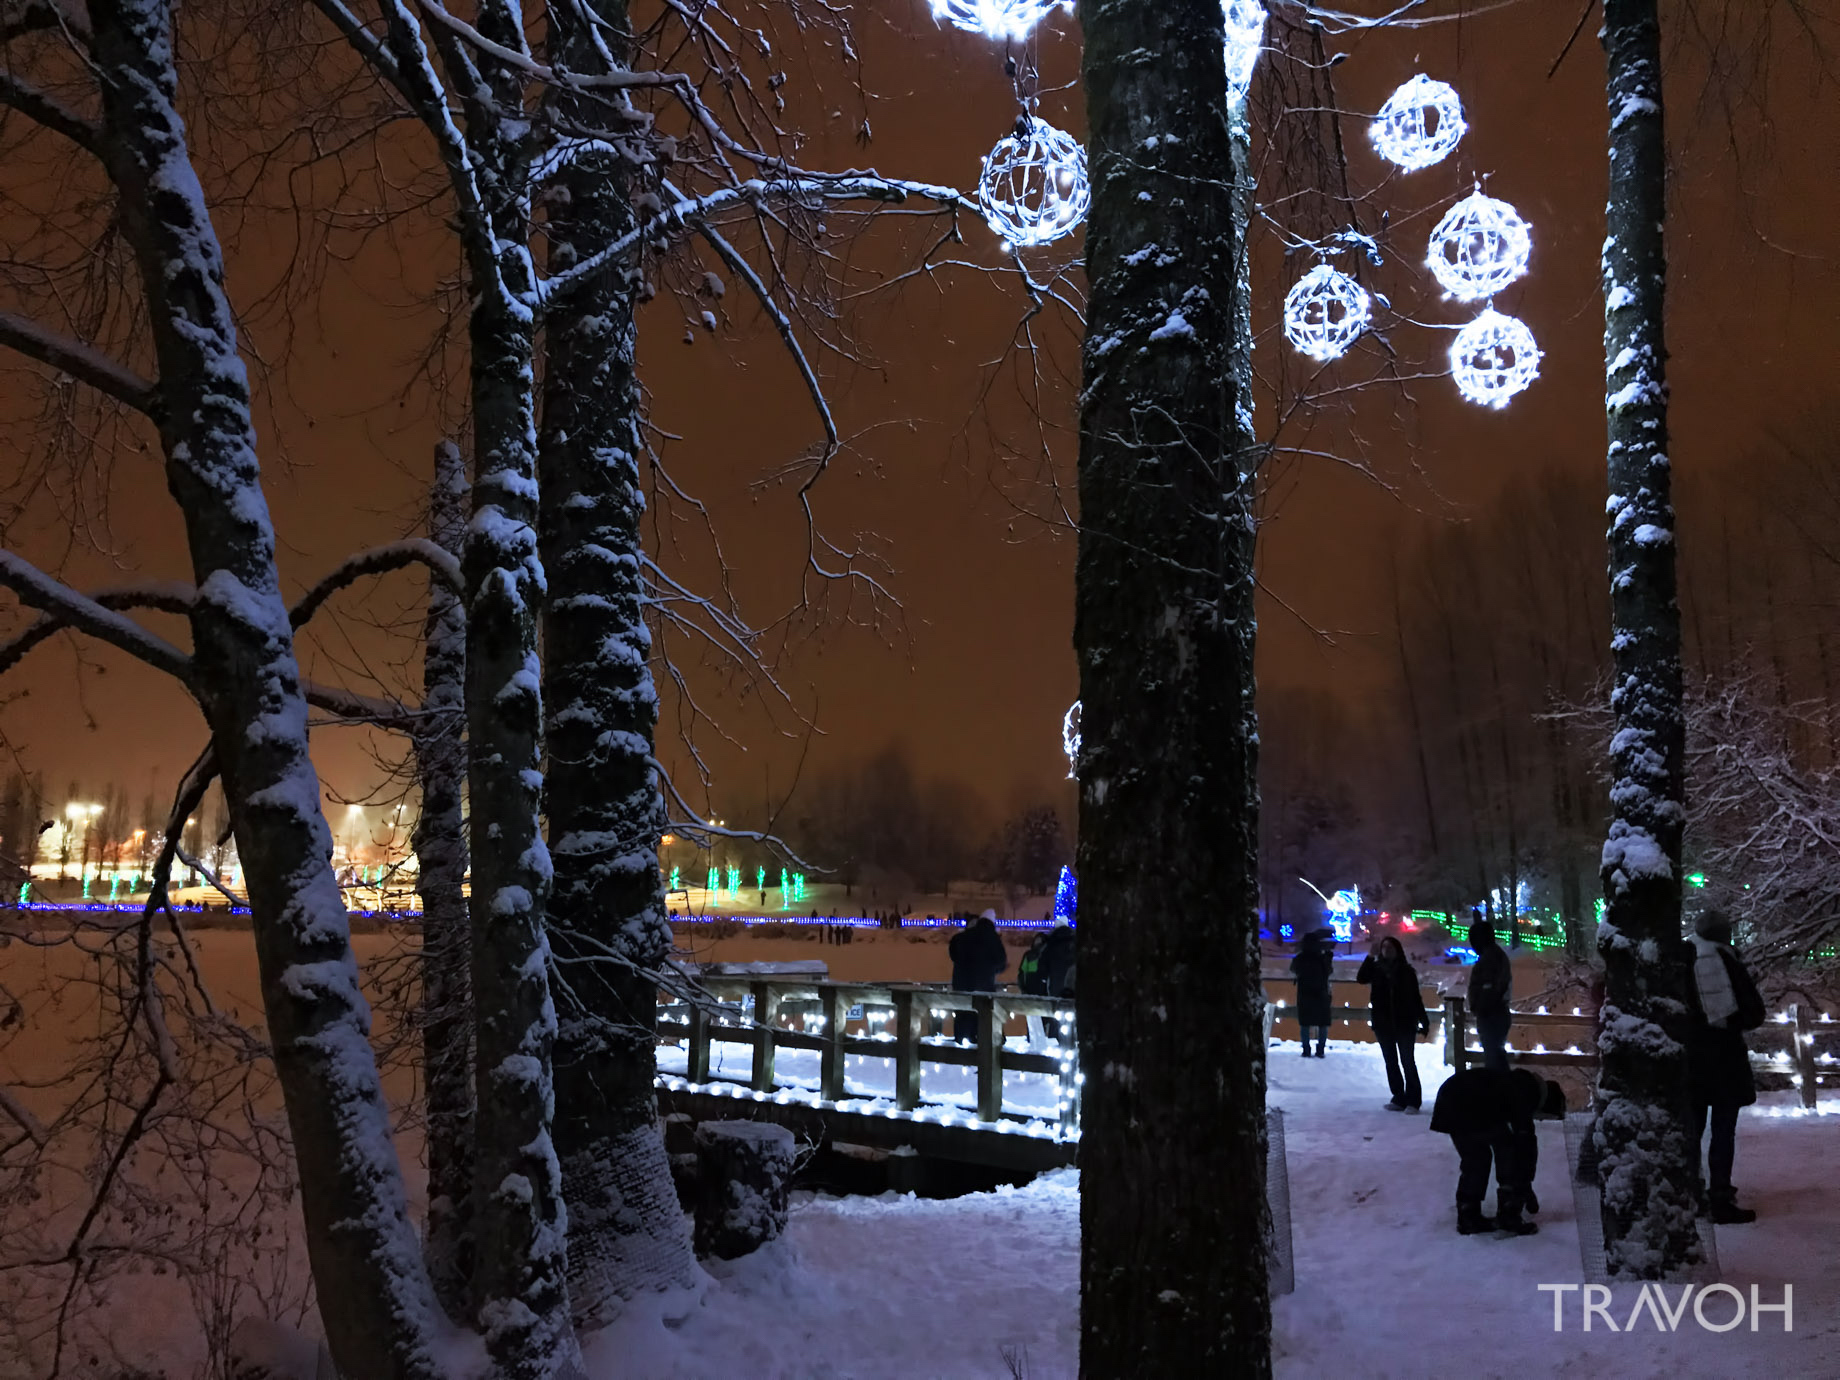 Lafarge Winter Lights Display – Spectacle for the Holiday Season and New Year Celebration